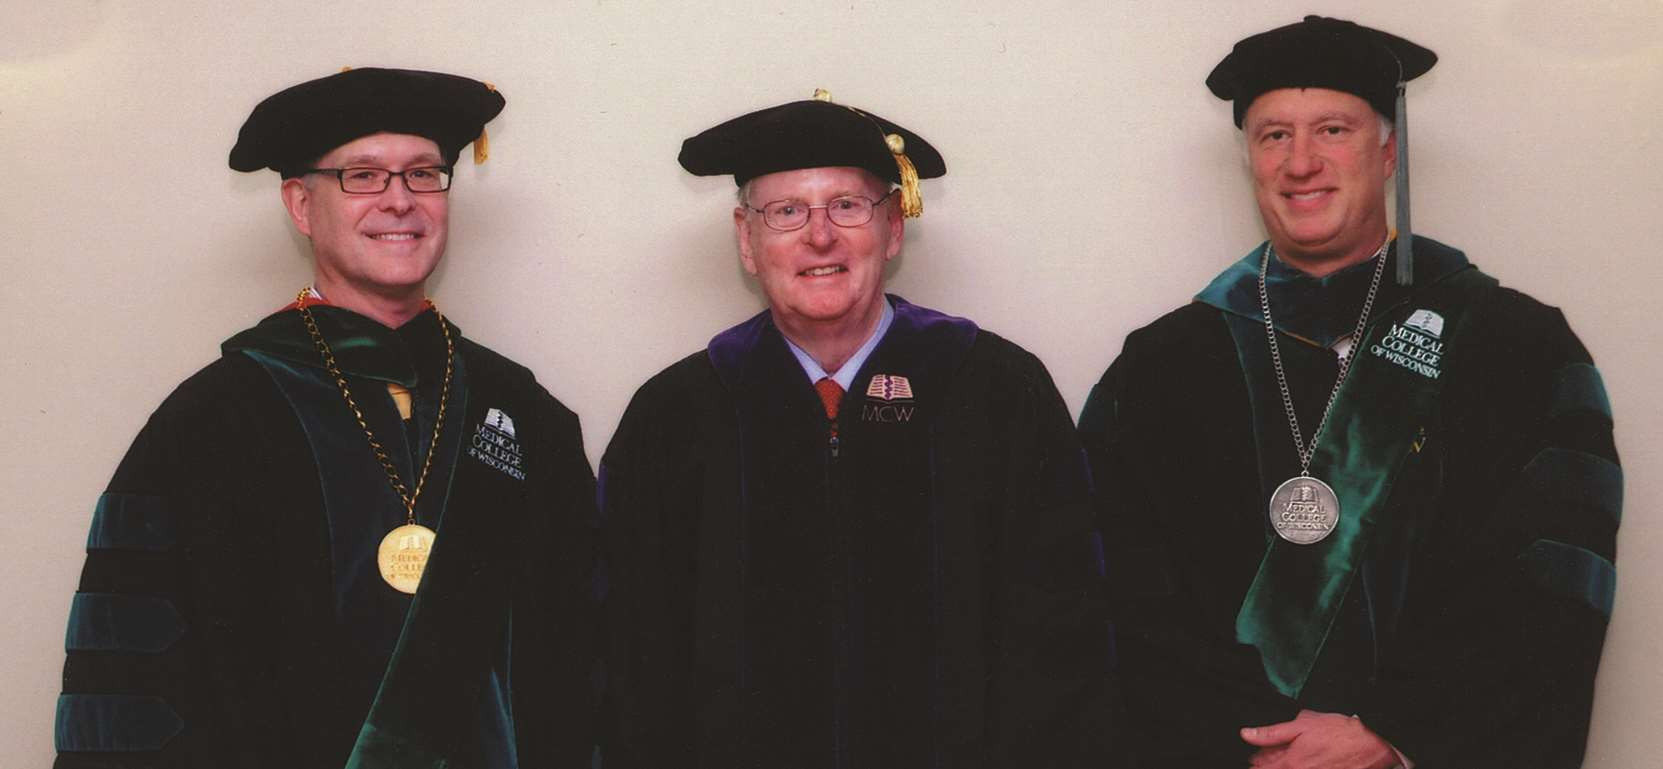 Mike Bolger receiving honorary degree at 2012 MCW Commencement ceremony